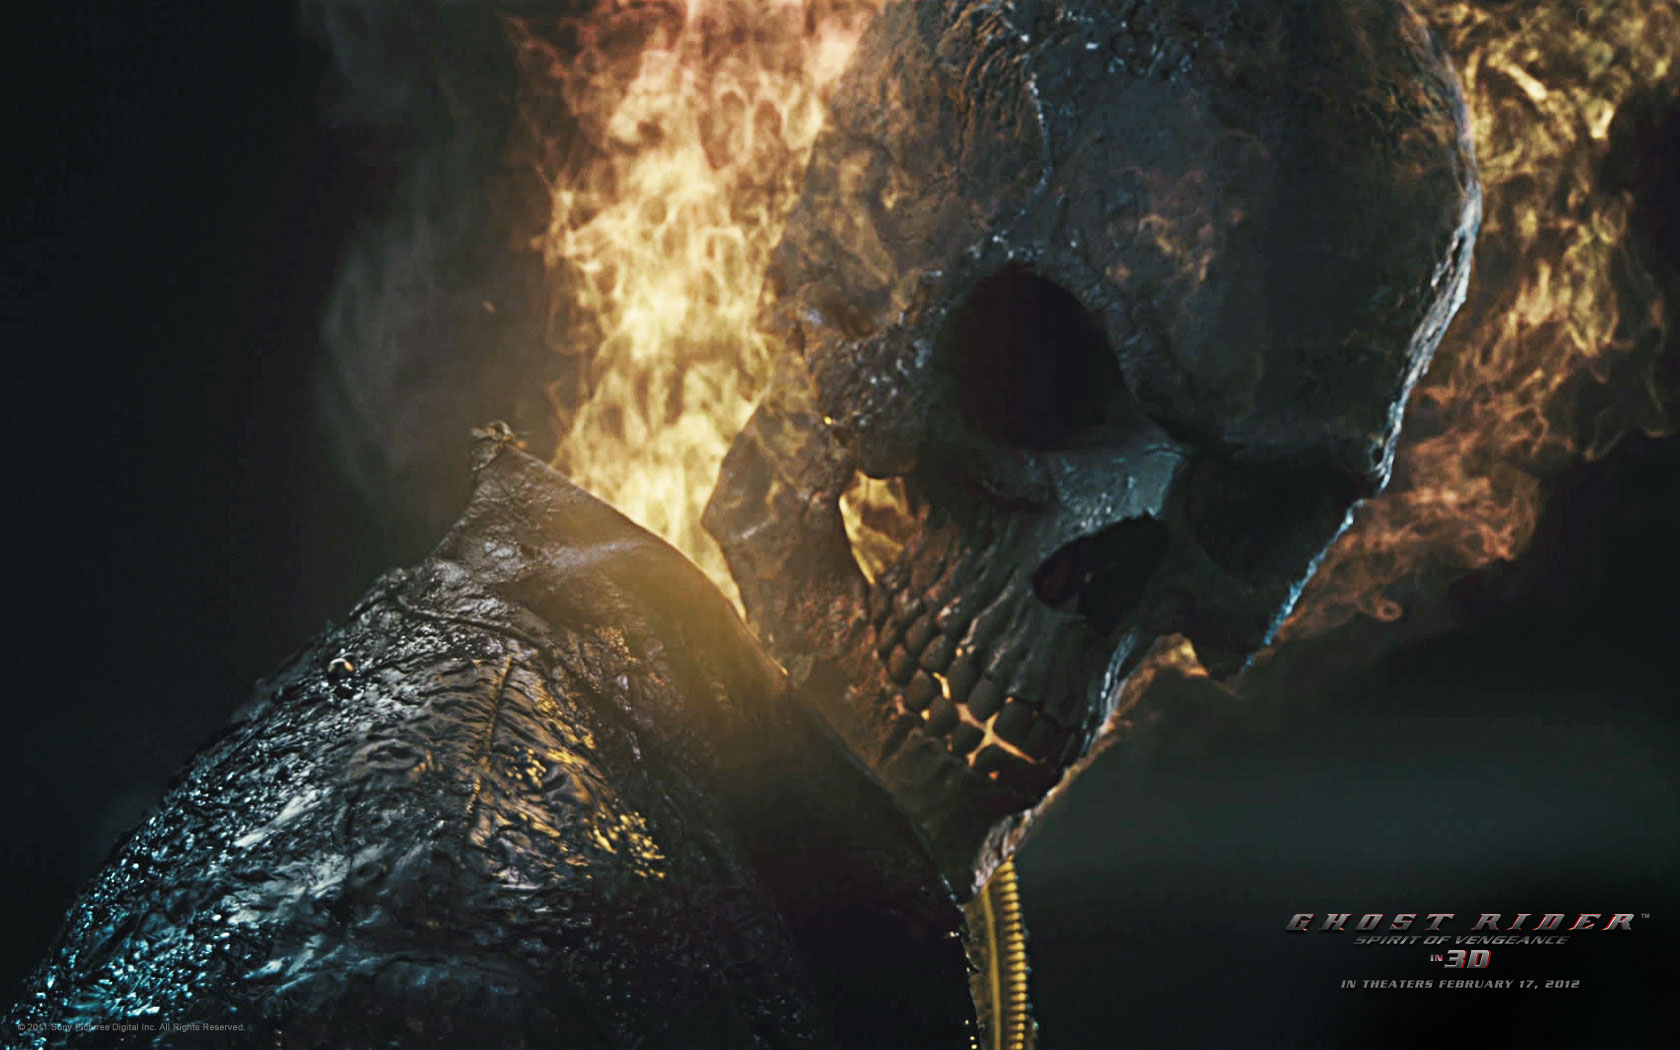 GHOST RIDER: SPIRIT OF VENGEANCE Website Contains These